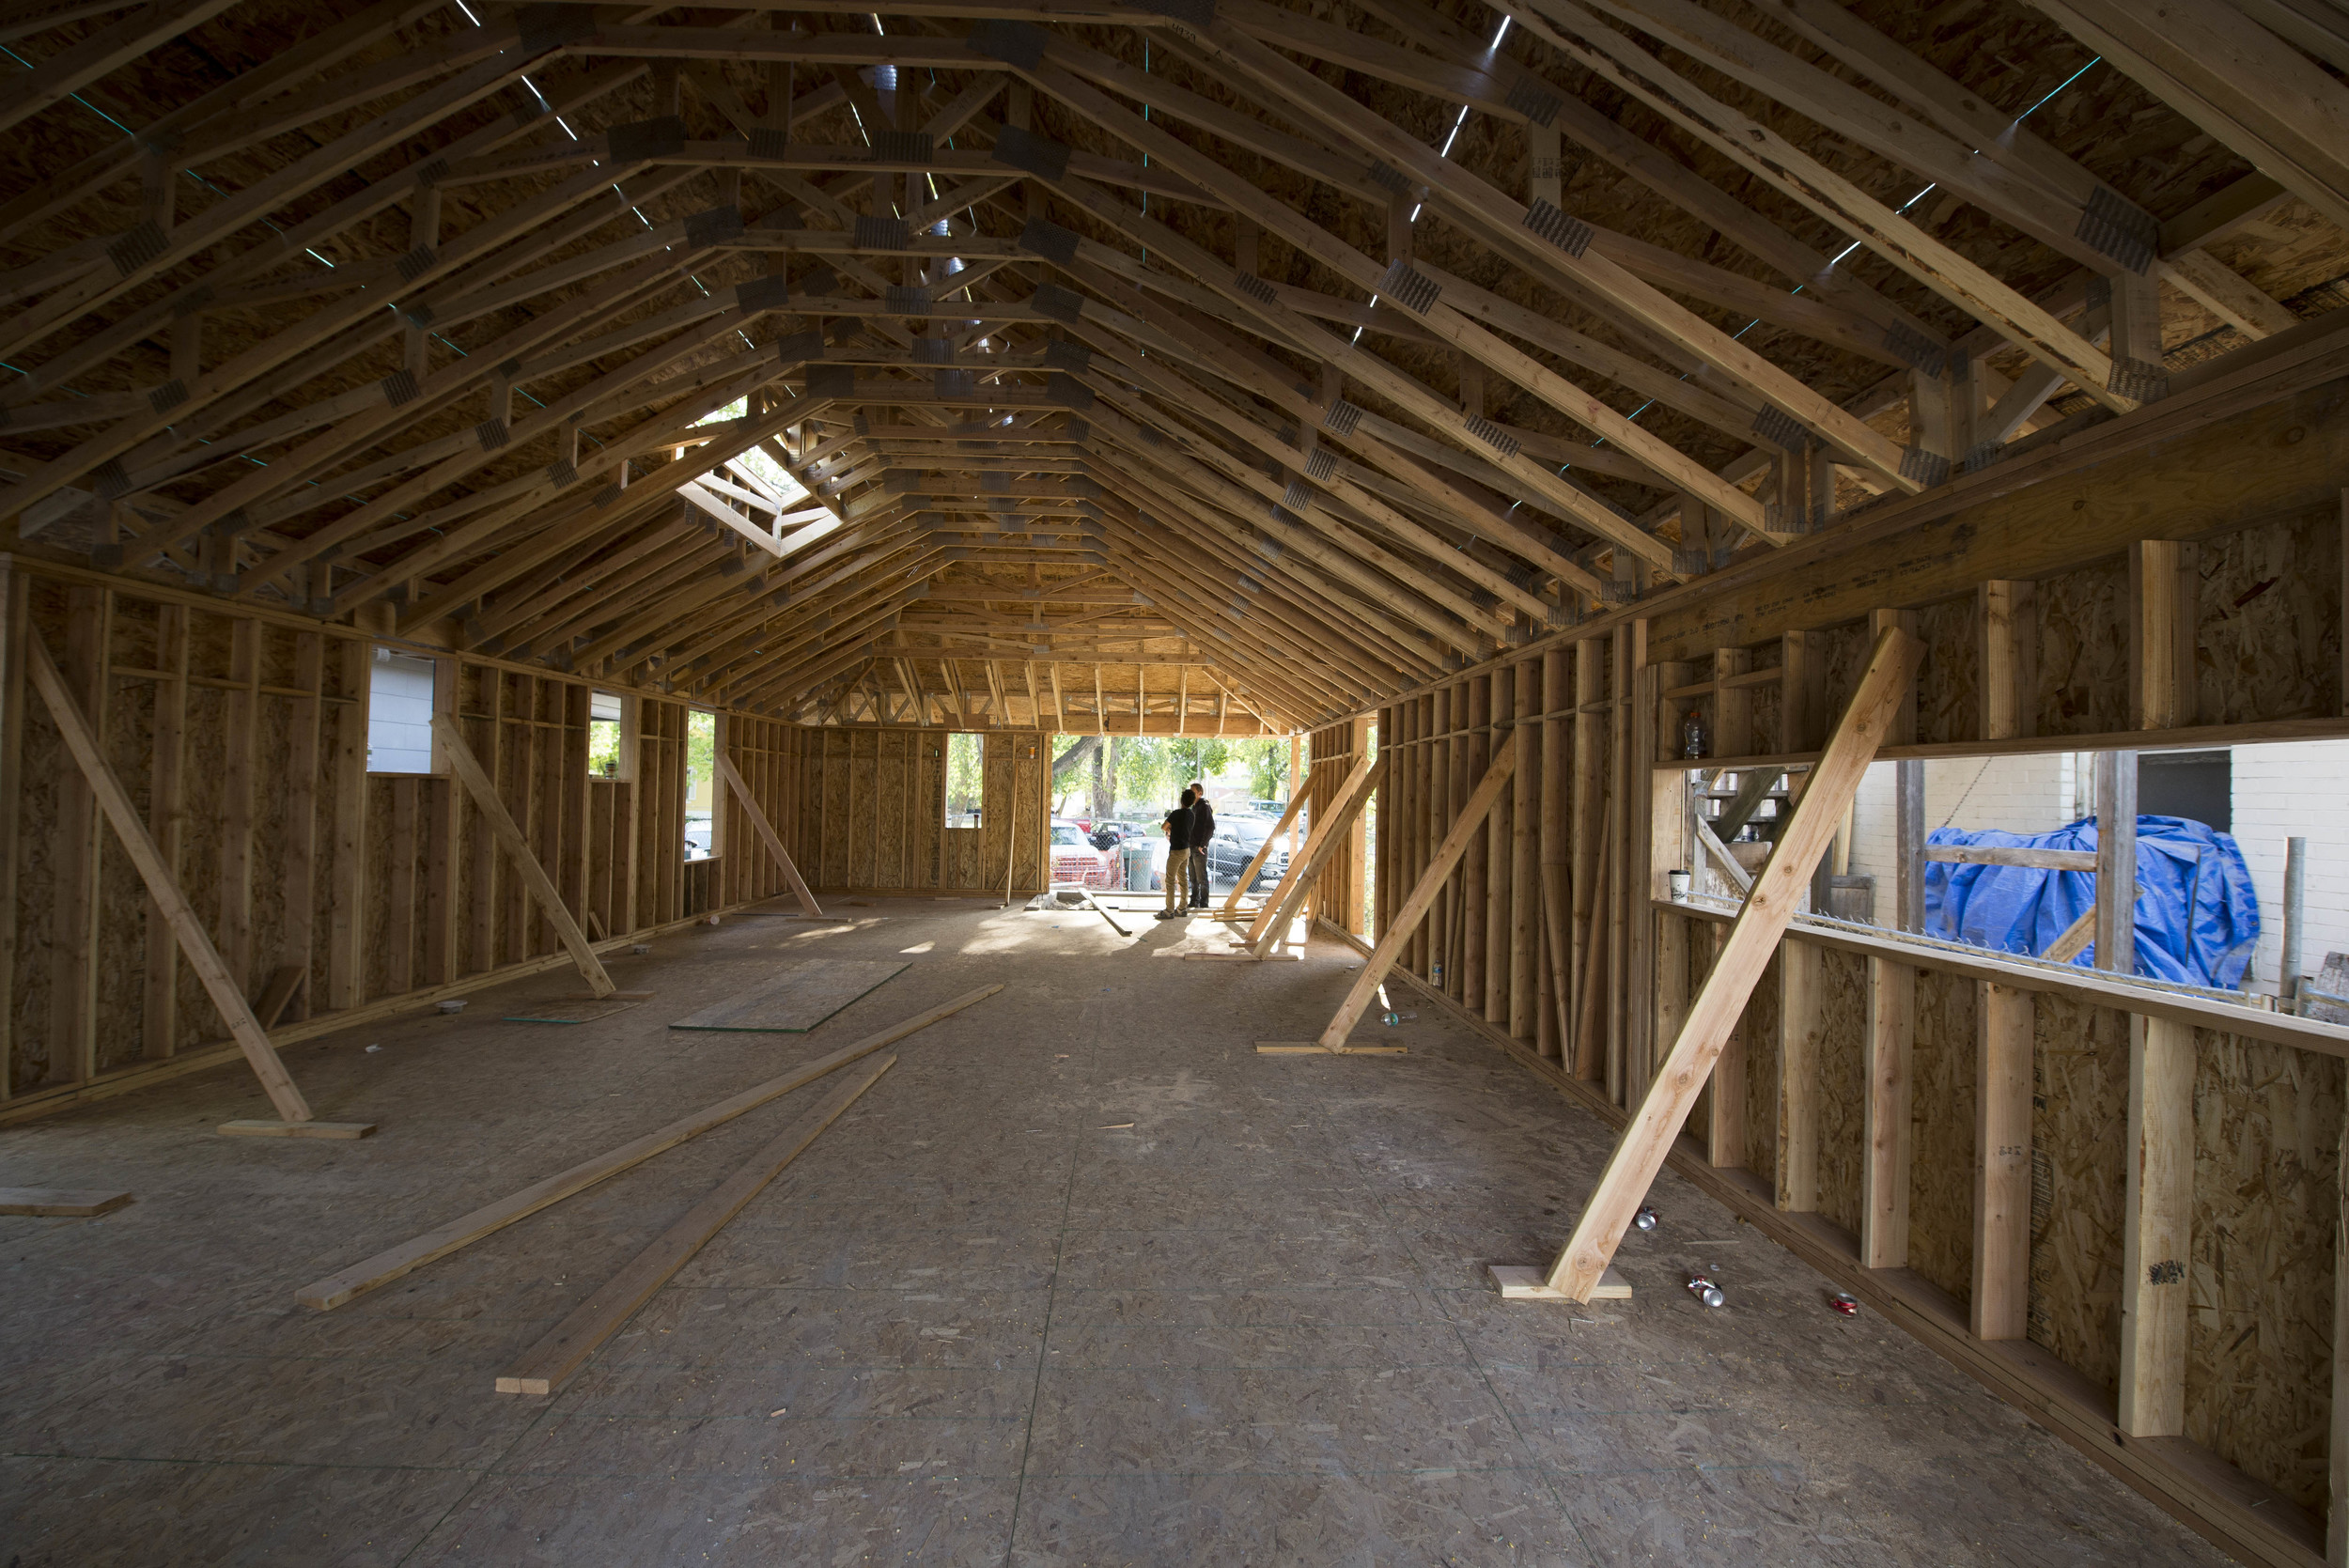 Trusses clear span the entire volume of space